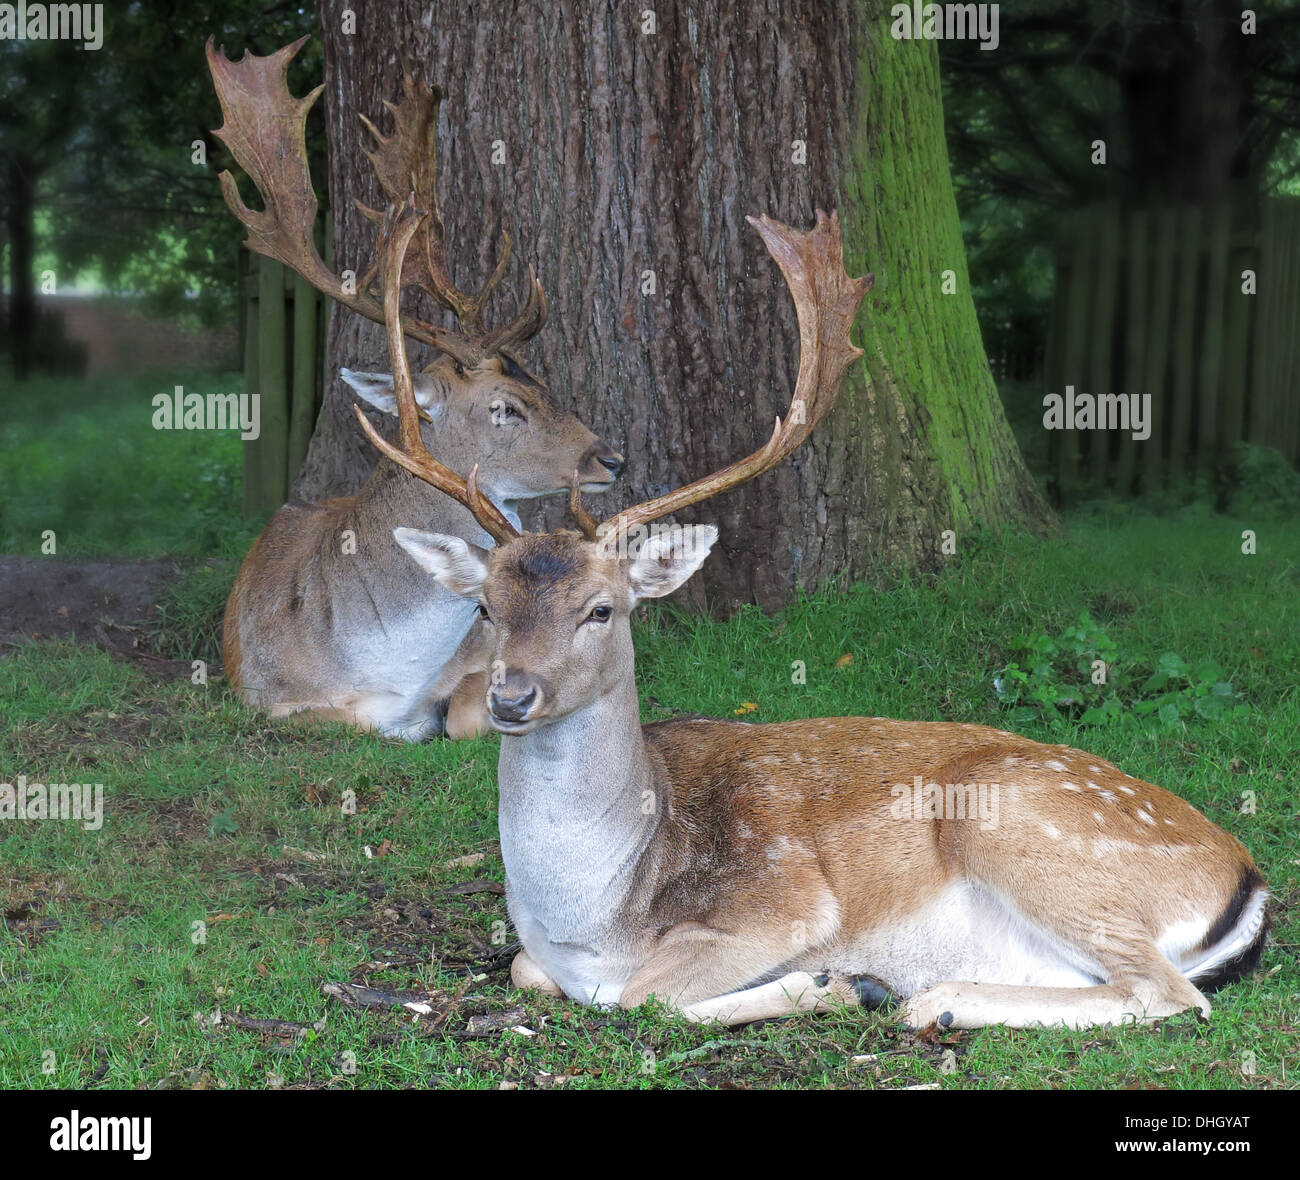 WA14,4SJ,WA144SJ,NT,national,Trust,park,deerpark,wild,tame,sitting,with,antlers,antler,majestic,beast,beasts,natural,pose,environment,GoTonySmith